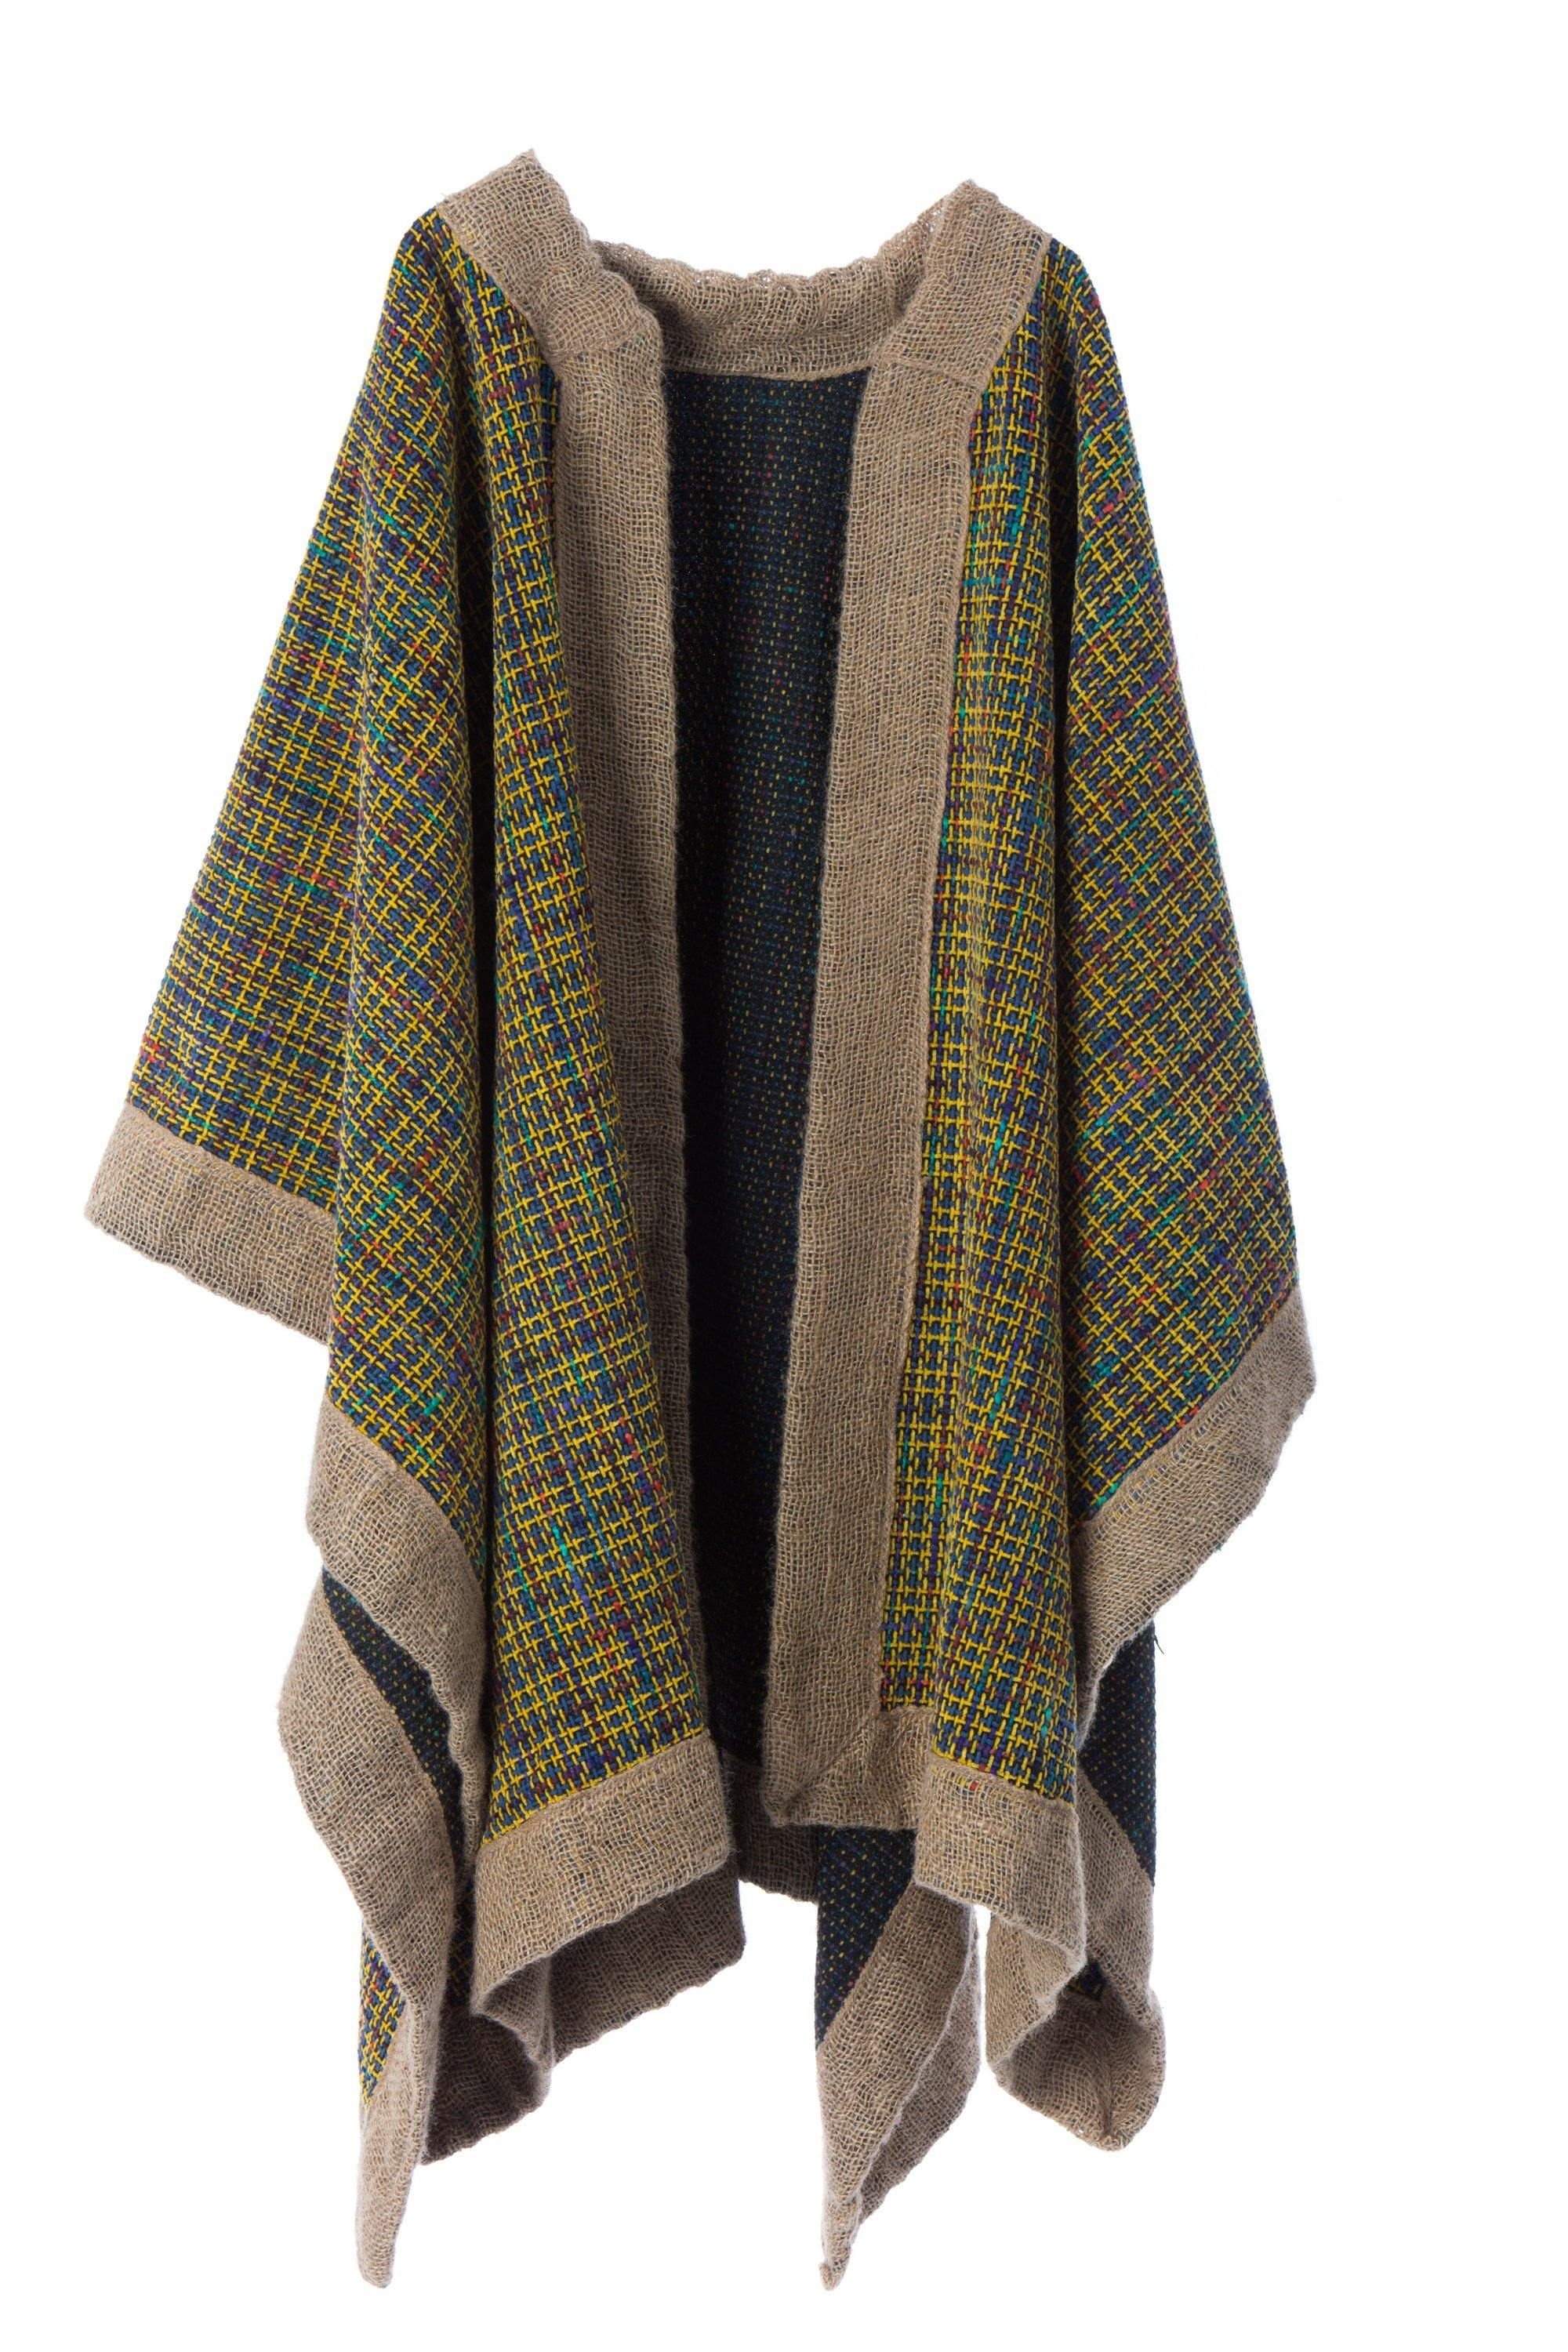 FUNKY JUTE - Handcrafted Artisanal Cape  - Natural Rough